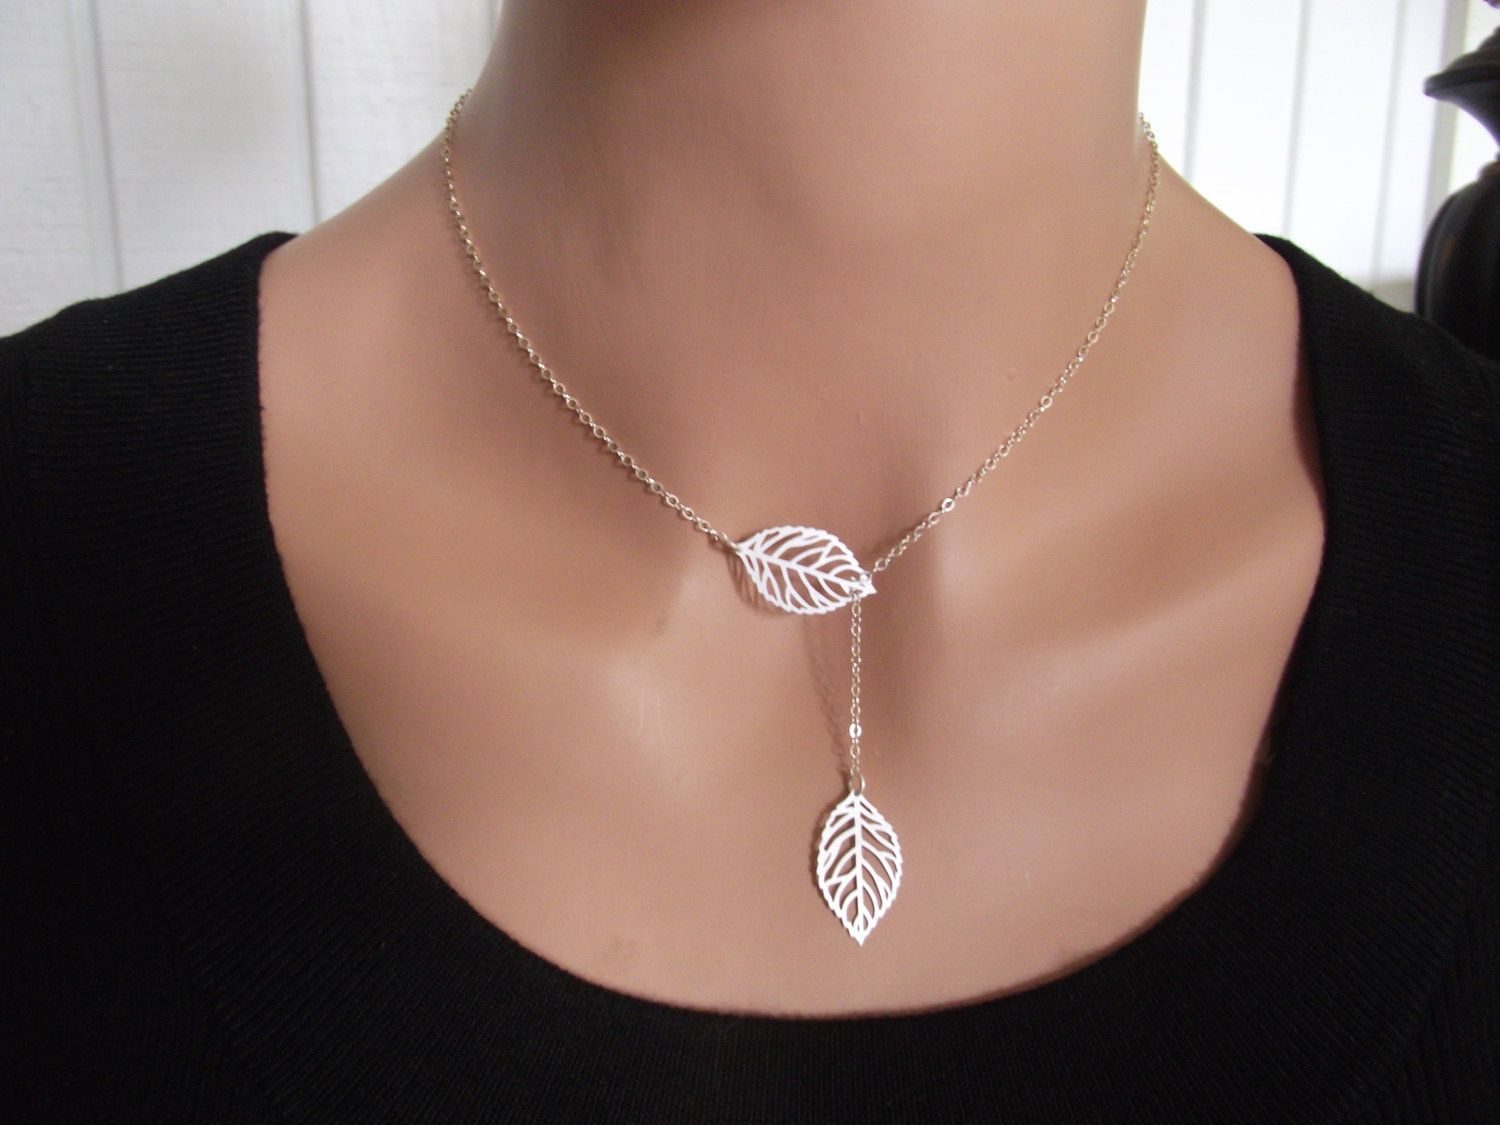 Silver leaf necklace sterling silver necklace leaf jewelry i really like the way this falls and the delicate design silver leaf necklace aloadofball Image collections